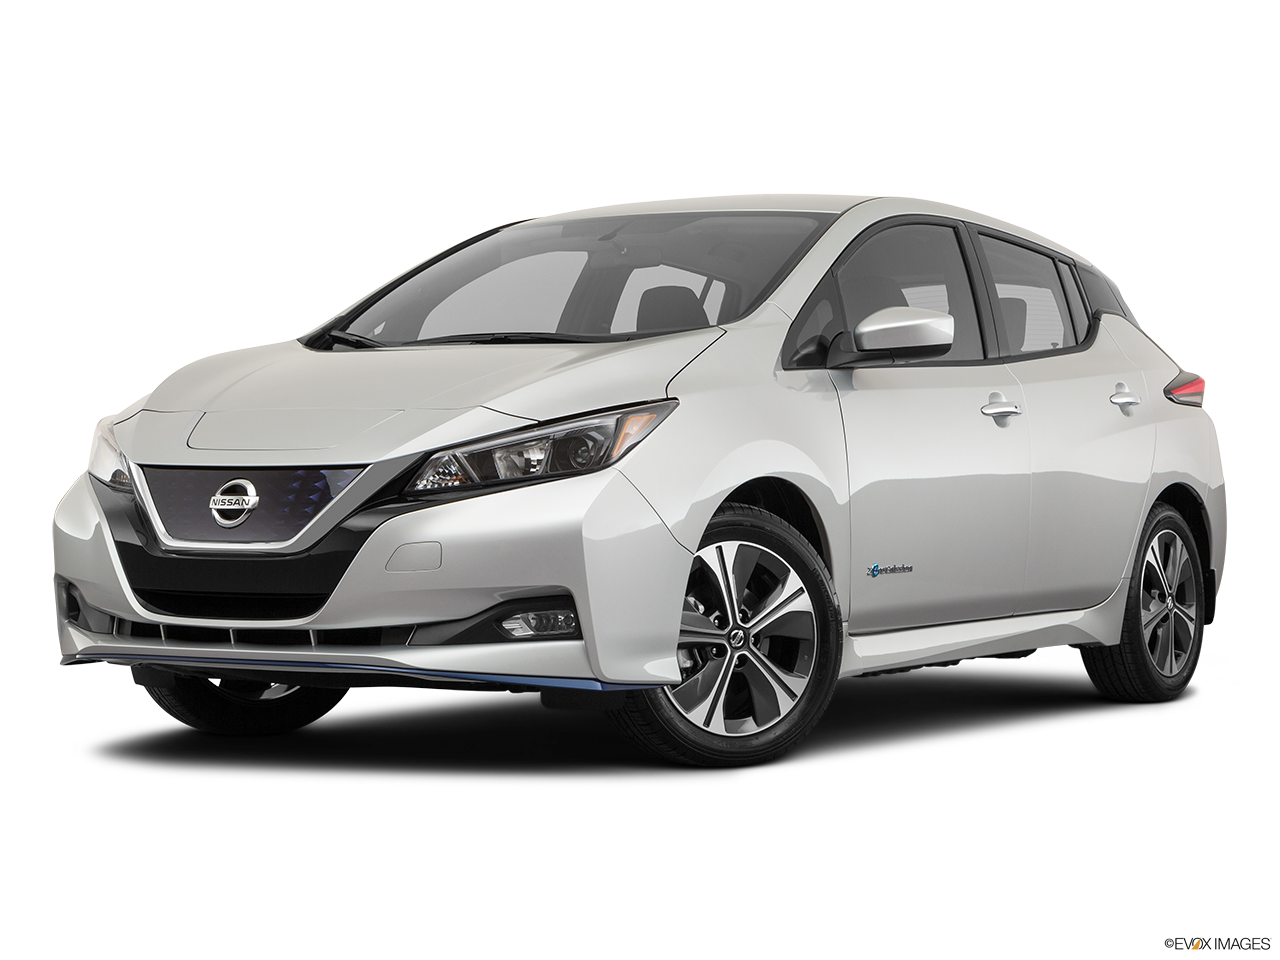 Three quart view of the Nissan LEAF